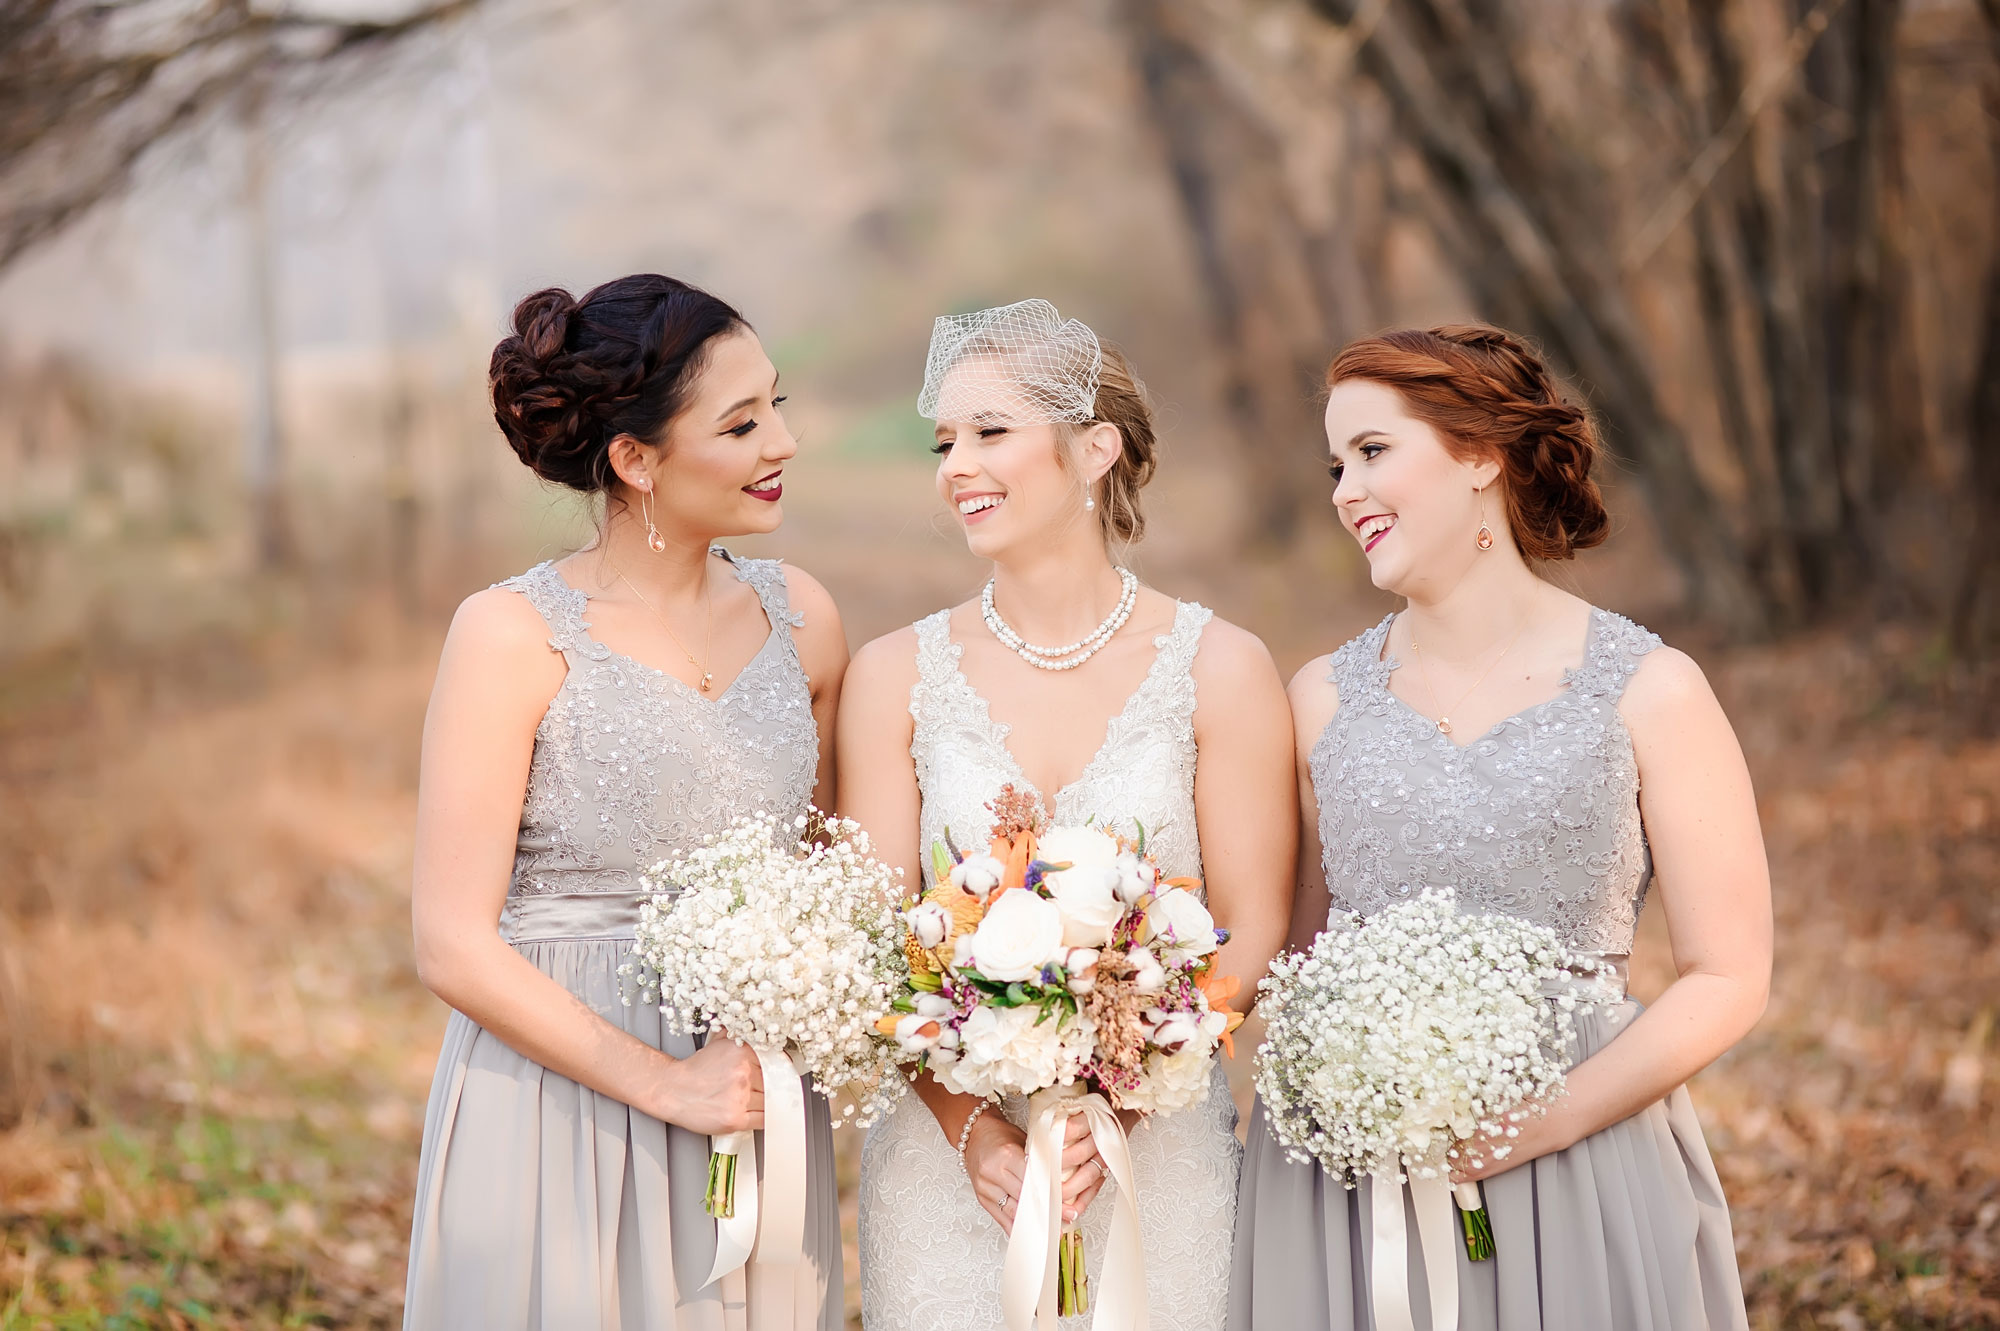 An Autumn Military Wedding in North Carolina